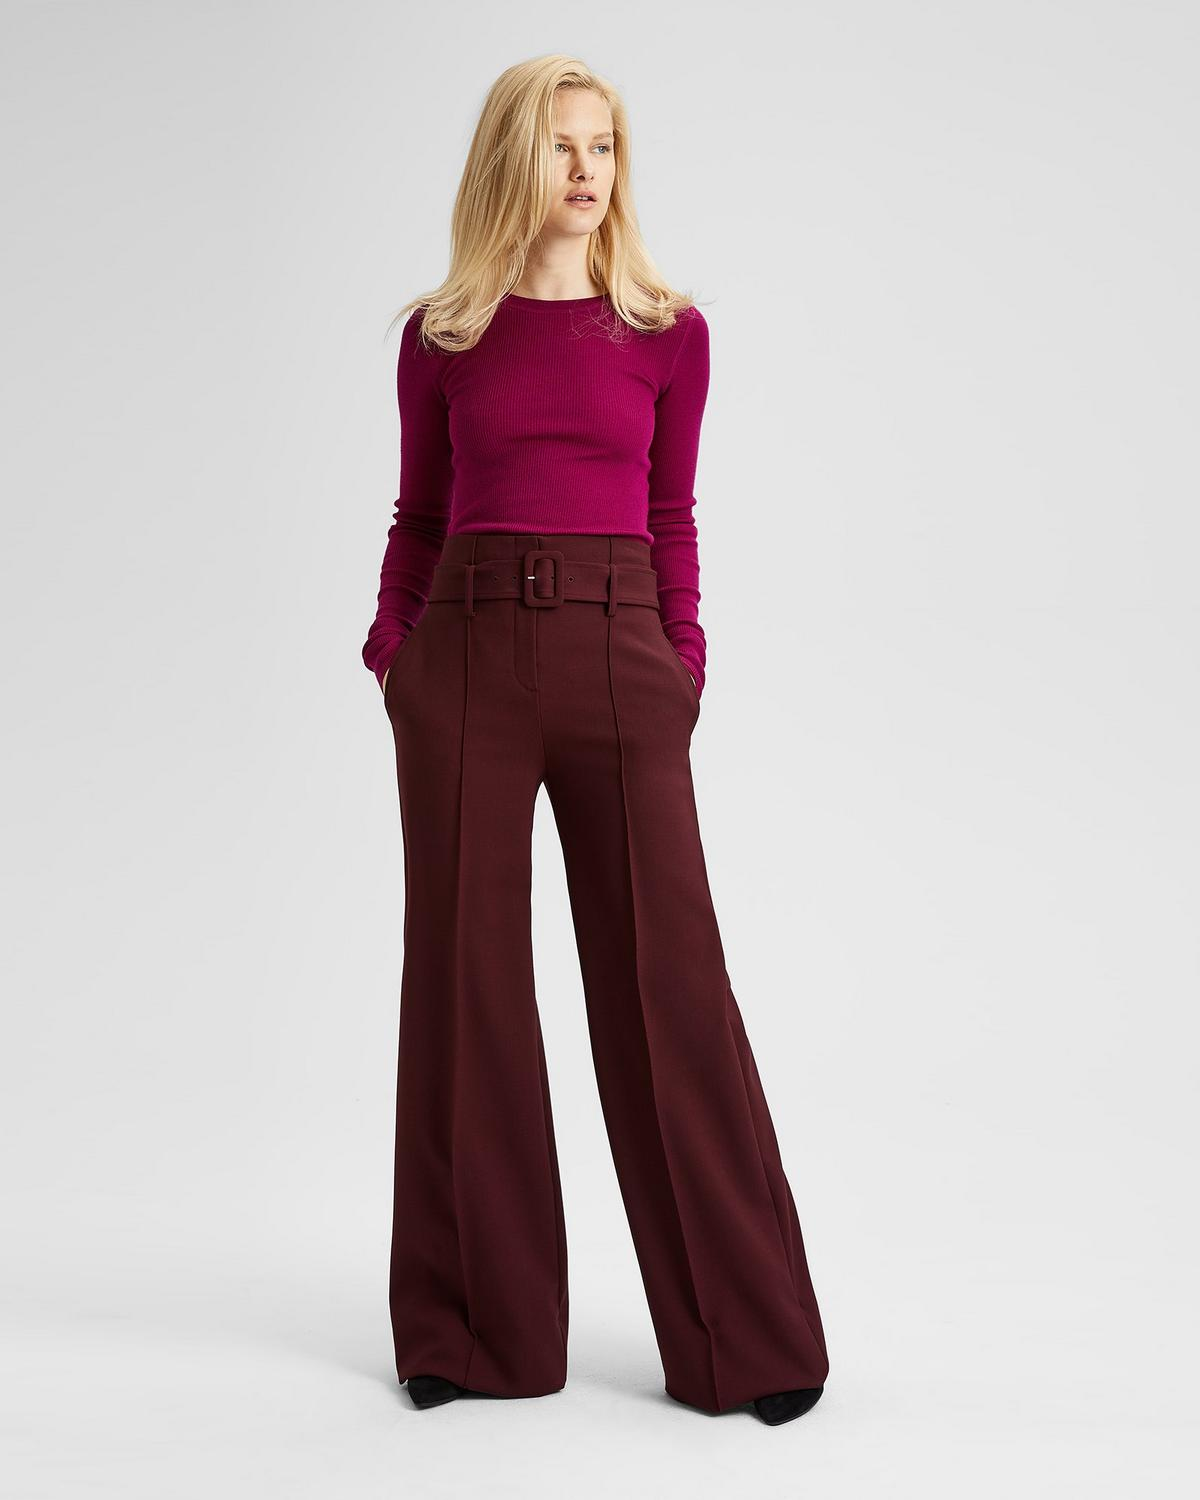 Stretch Wool Belted High-Waist Pant in Dark Currant from Theory